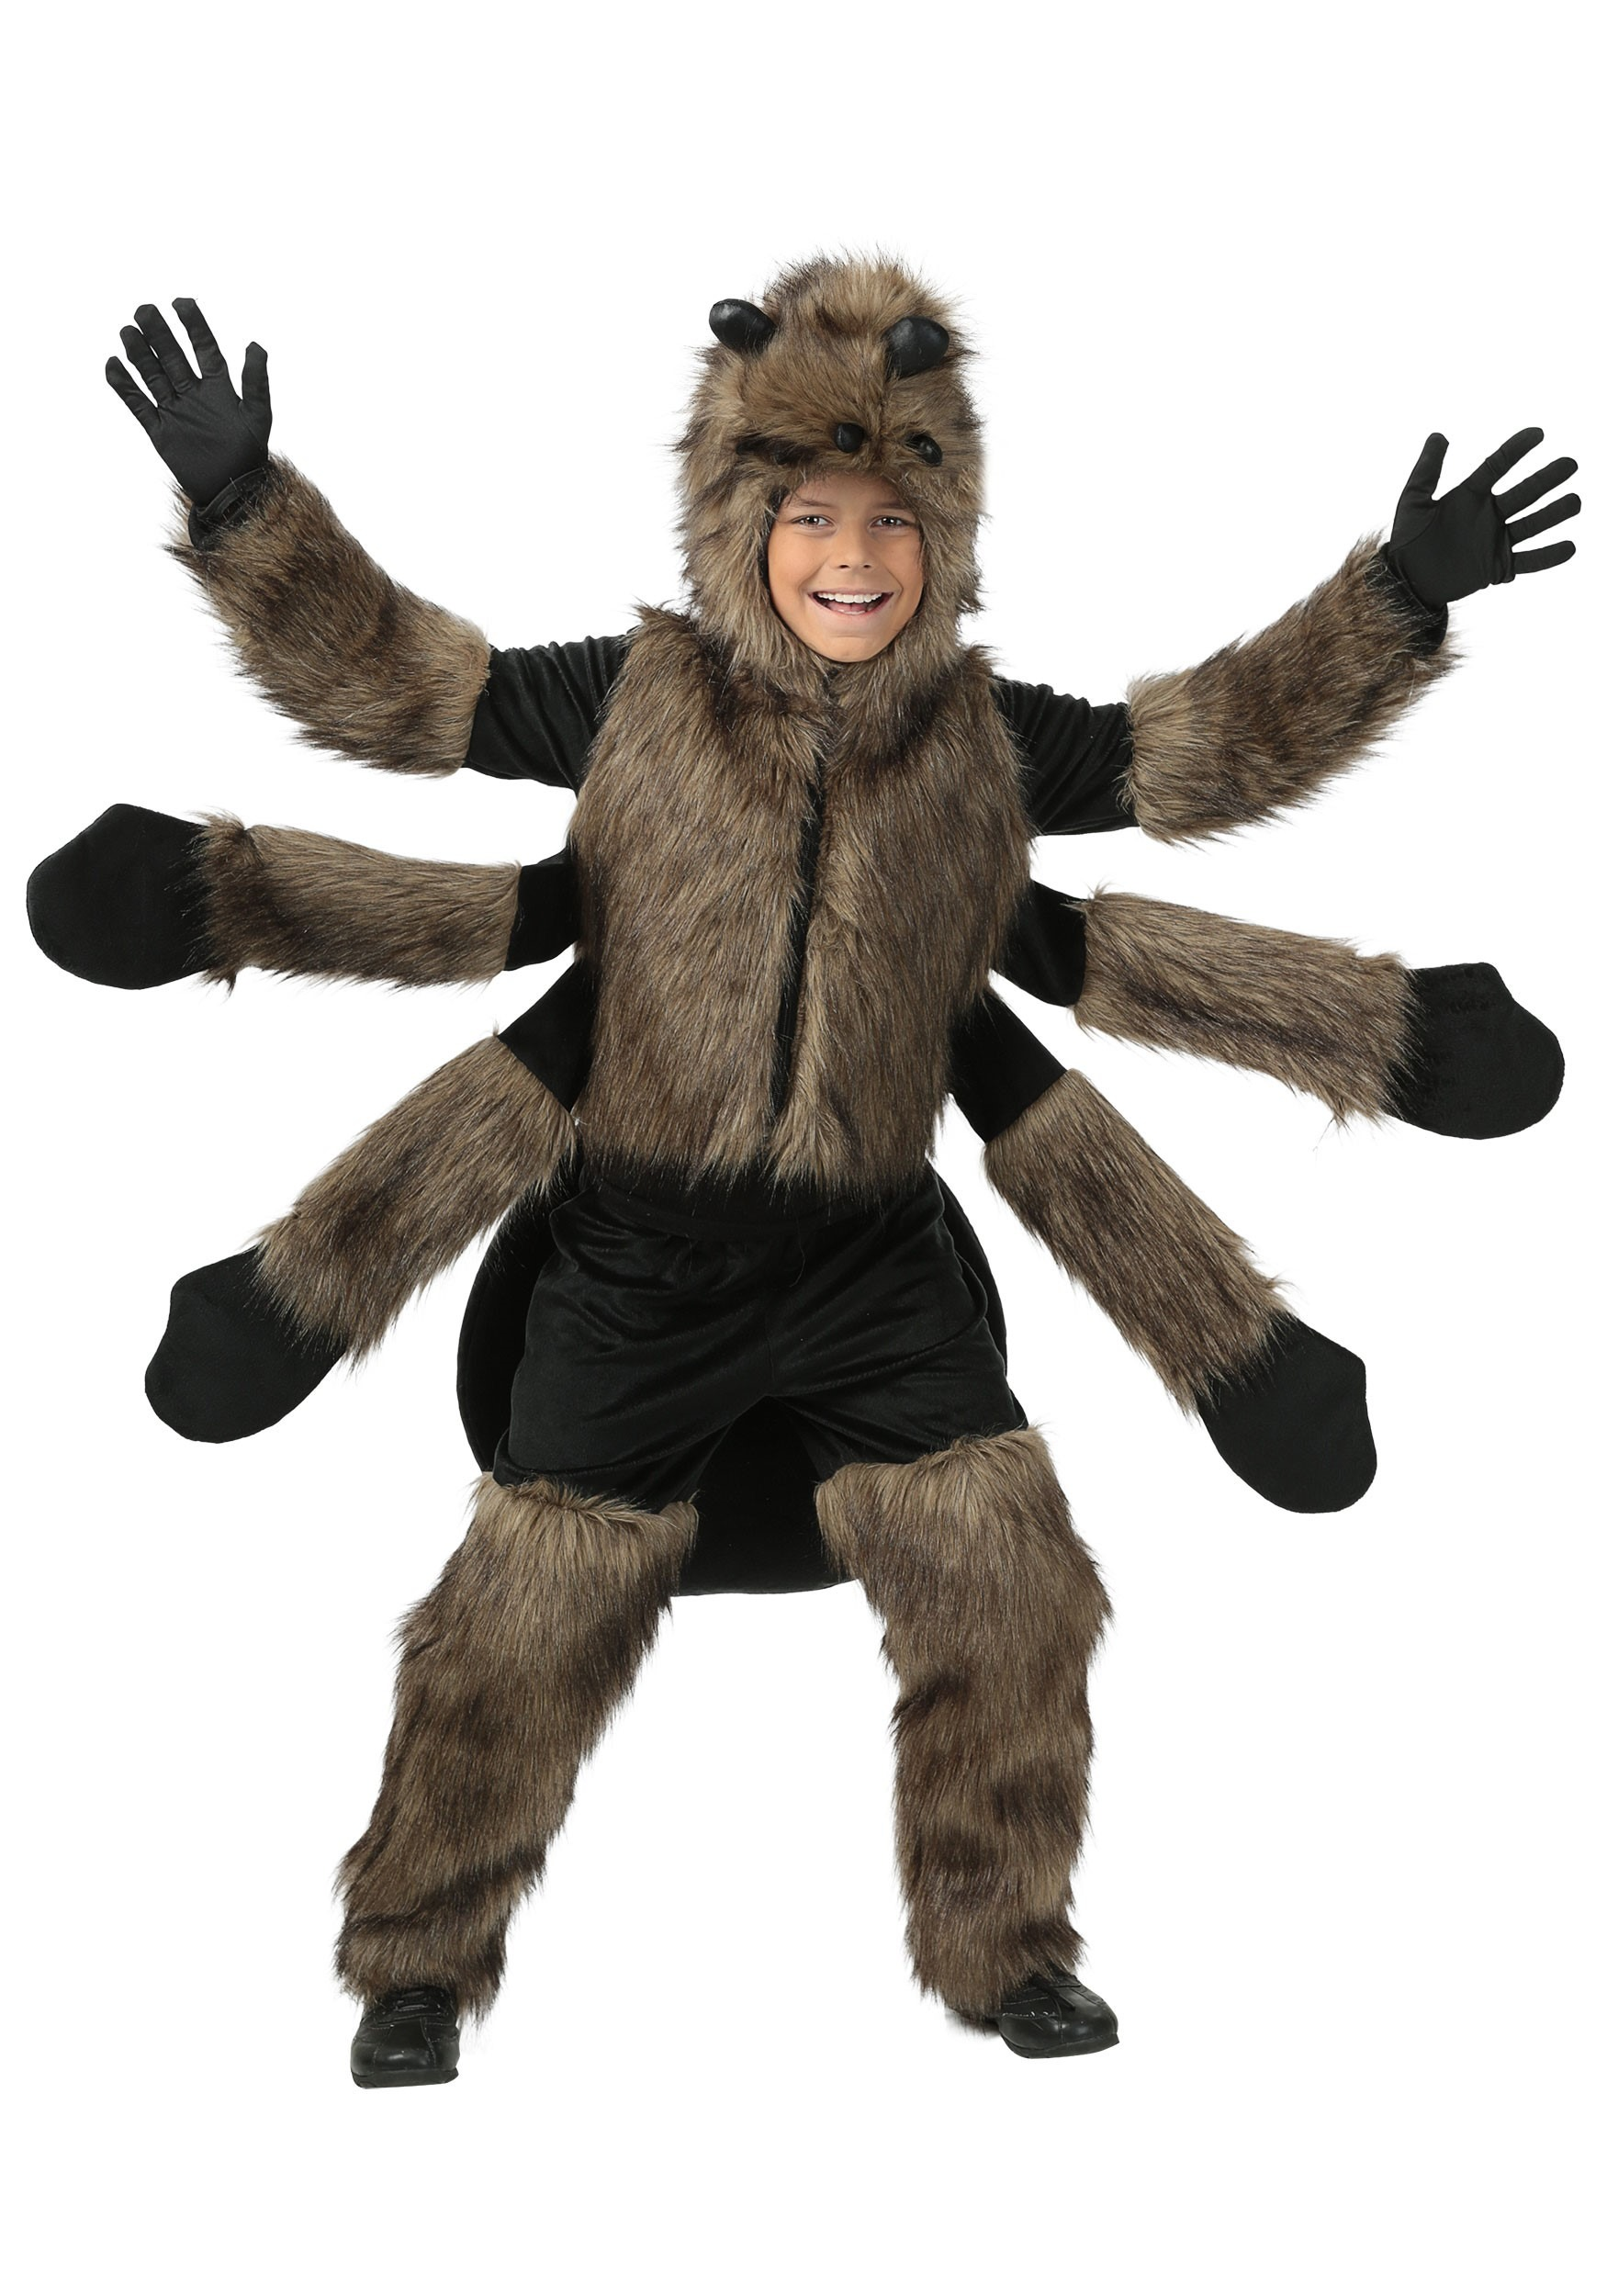 Furry Spider Kids Costume